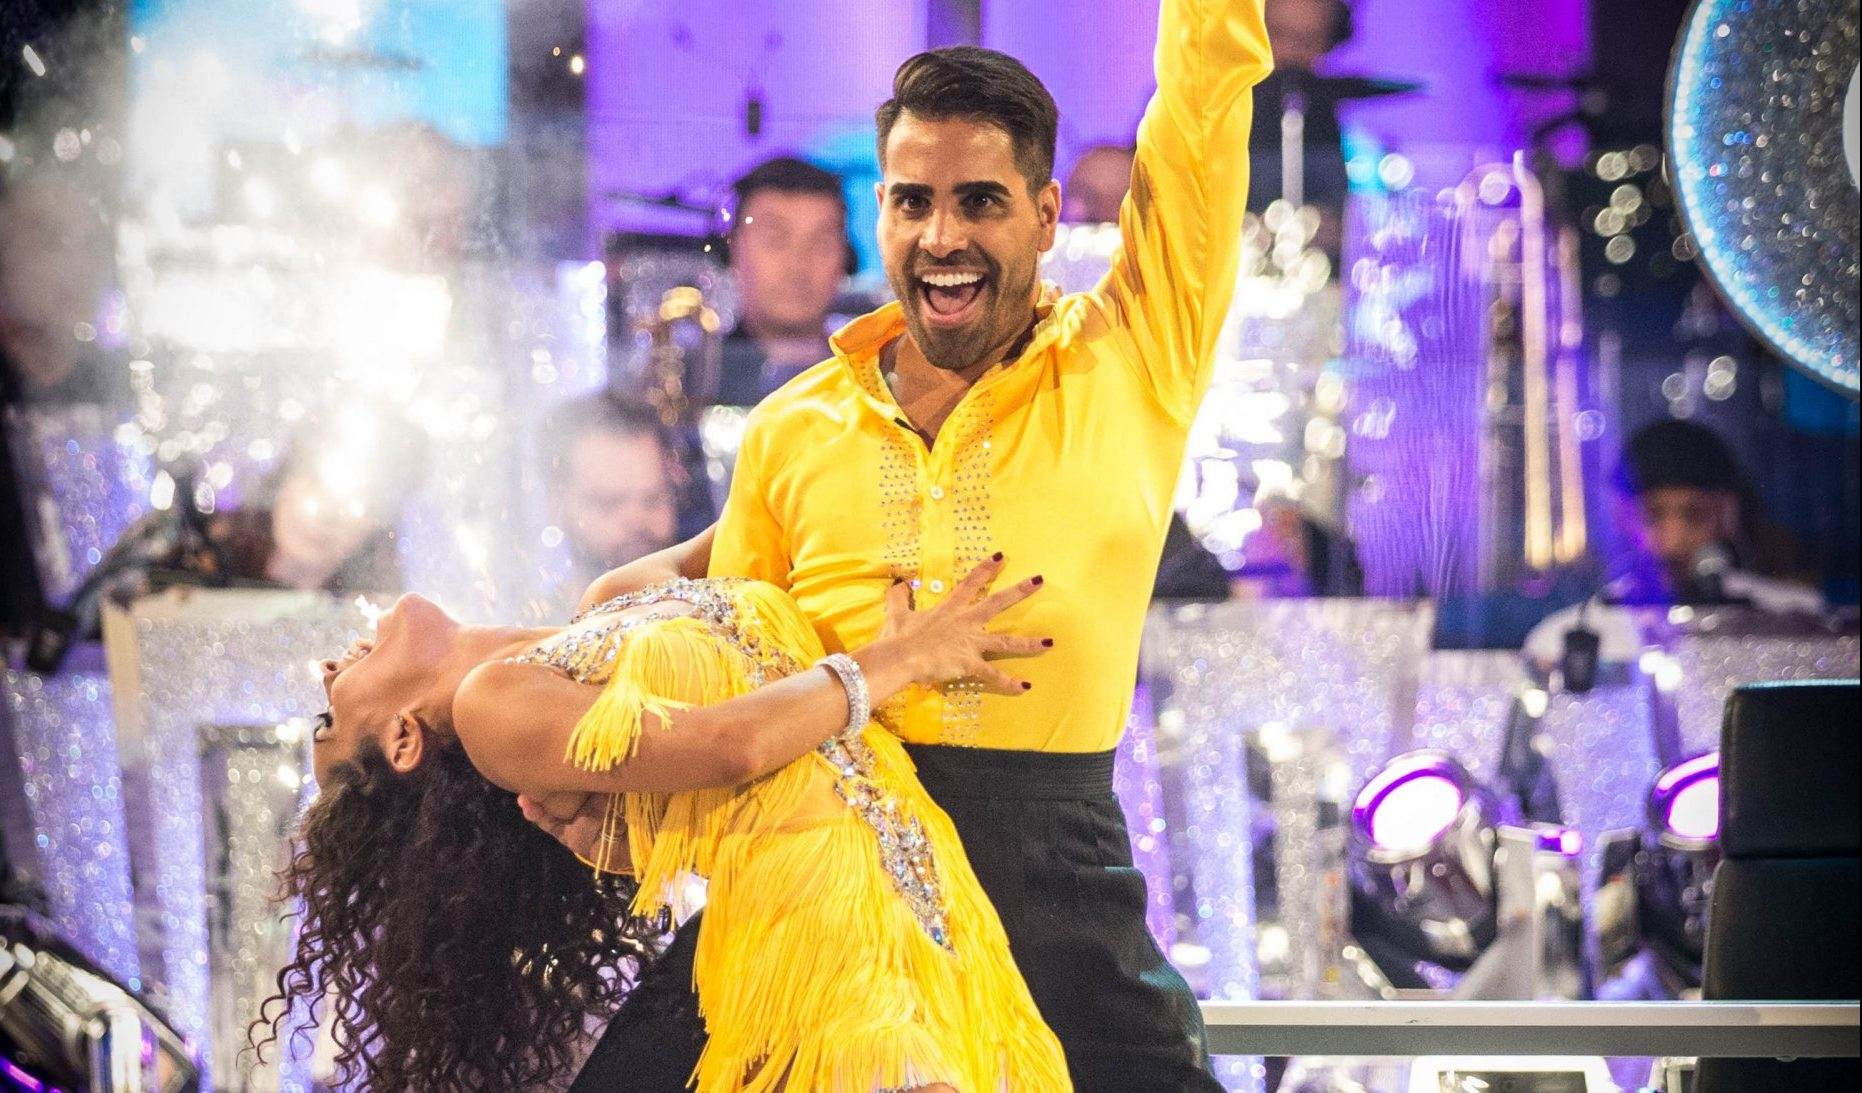 Dr Ranj reveals Strictly Come Dancing has sparked anxiety battle: 'It's been interfering with learning'